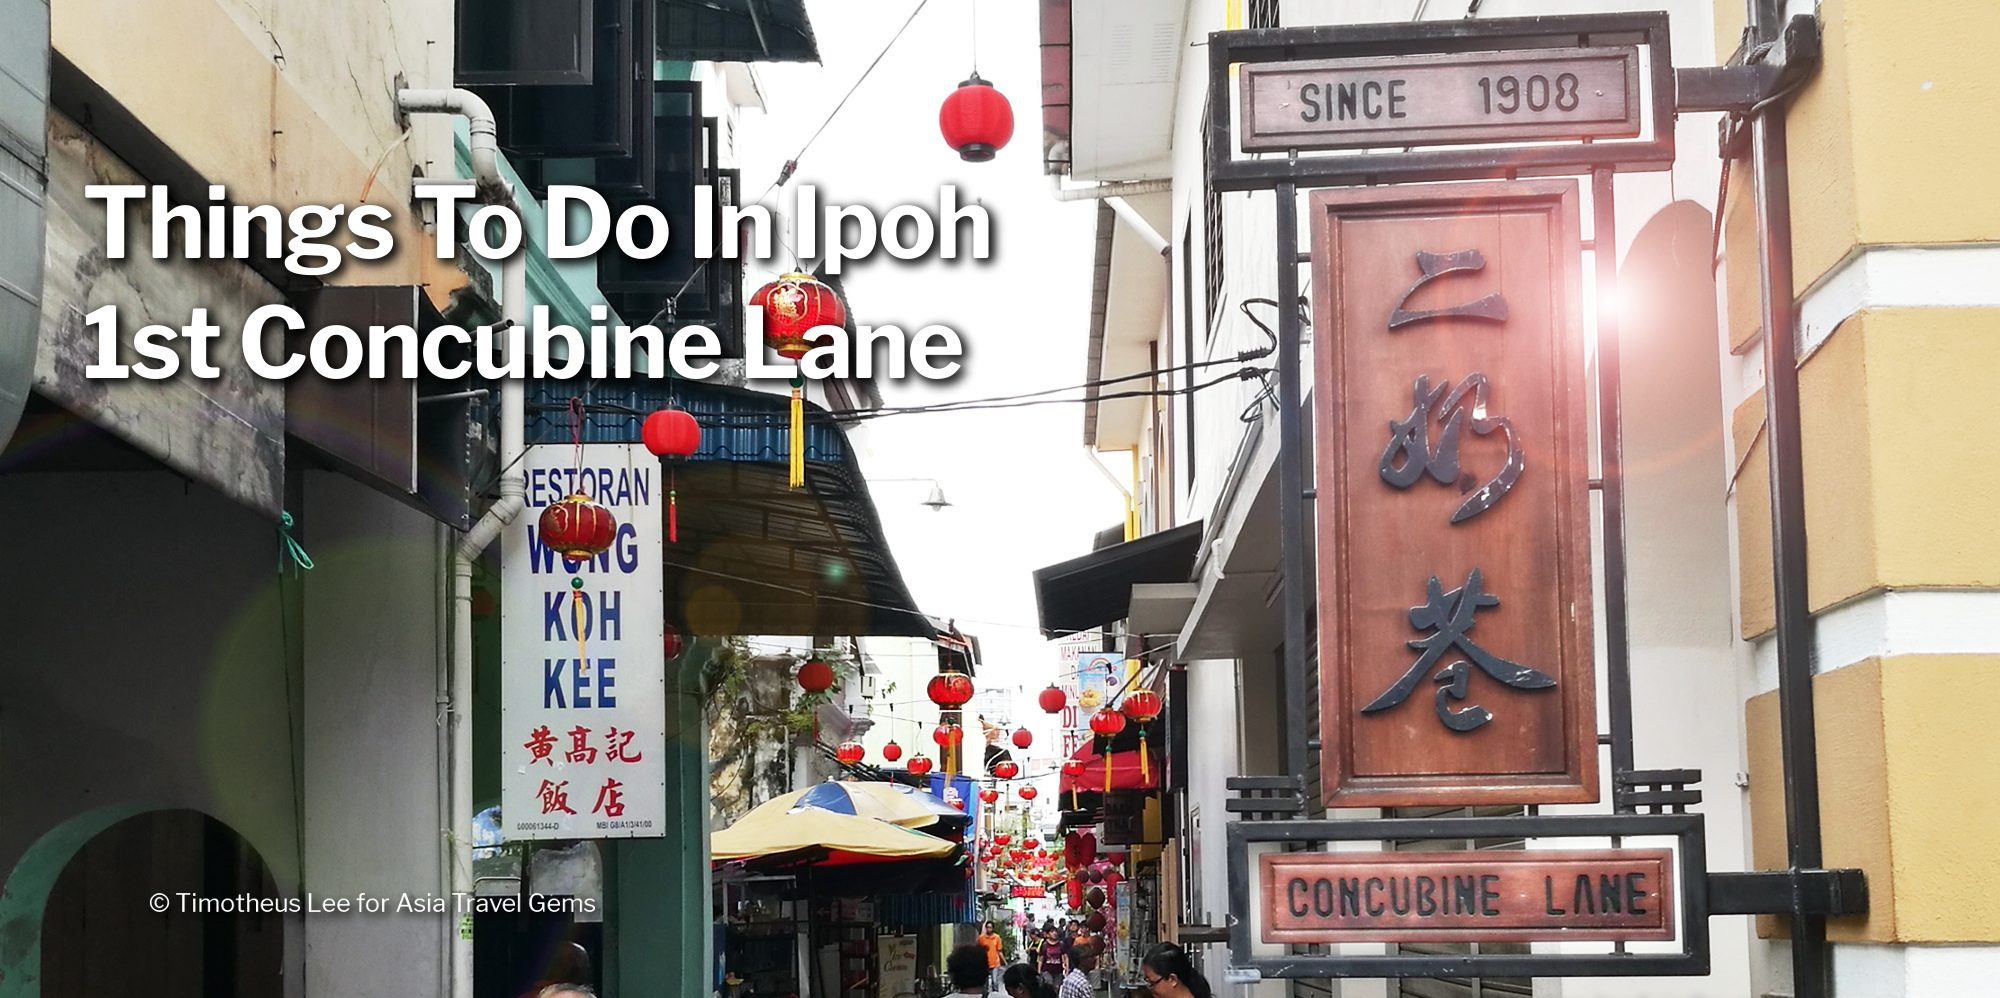 Things To Do In Ipoh - Second Concubine Lane - Header